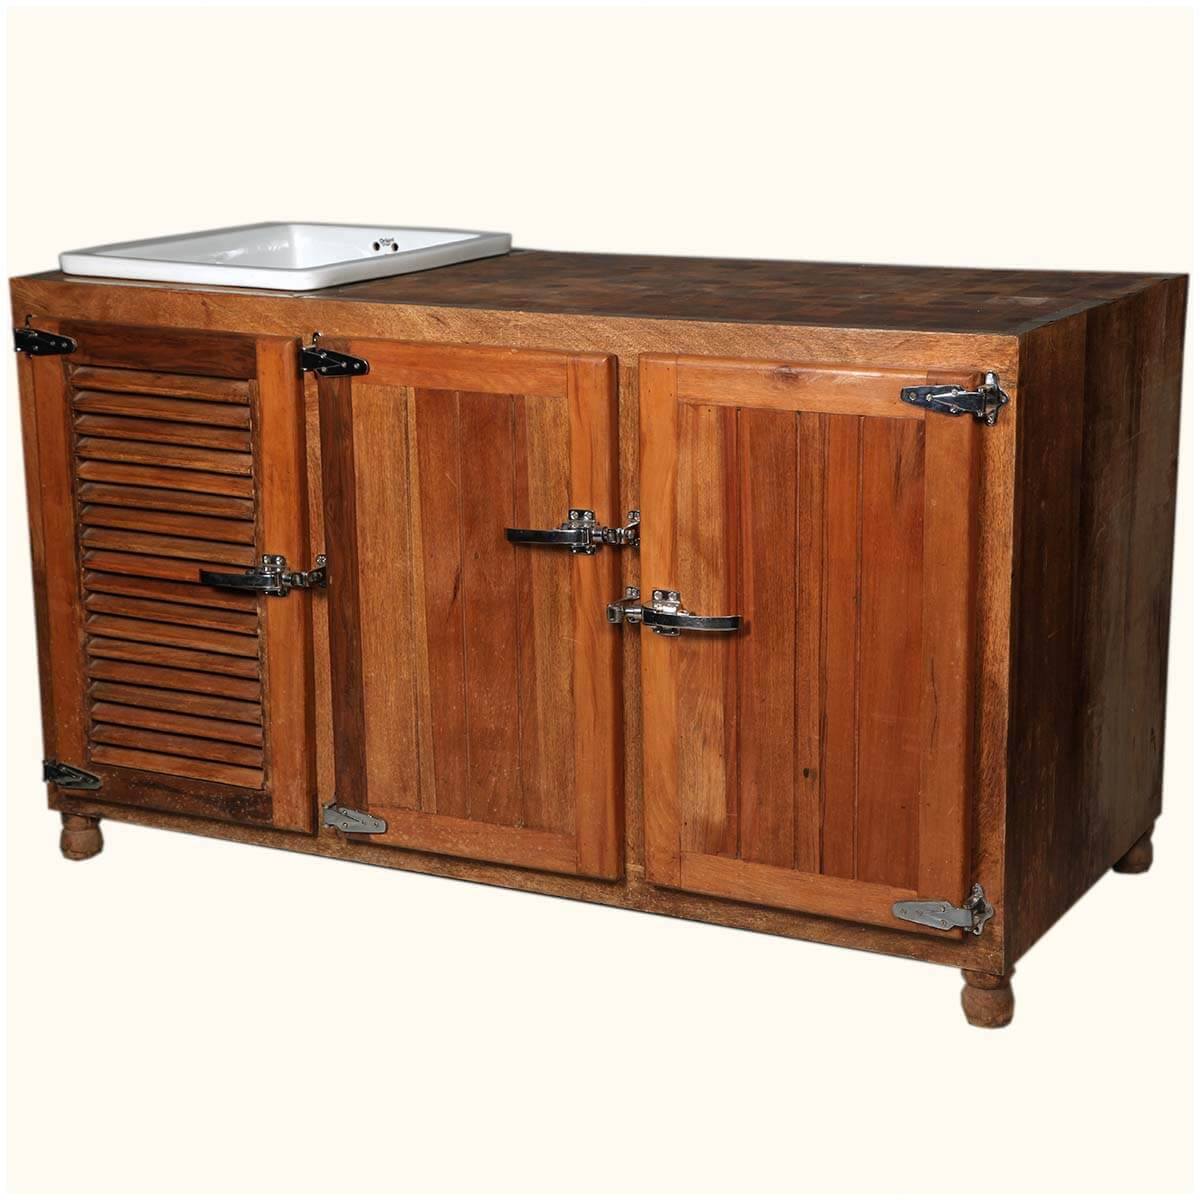 Kitchen Cabinet Solid Wood: Mission Solid Wood & Ceramic Wine Rack Kitchen Sink Cabinet